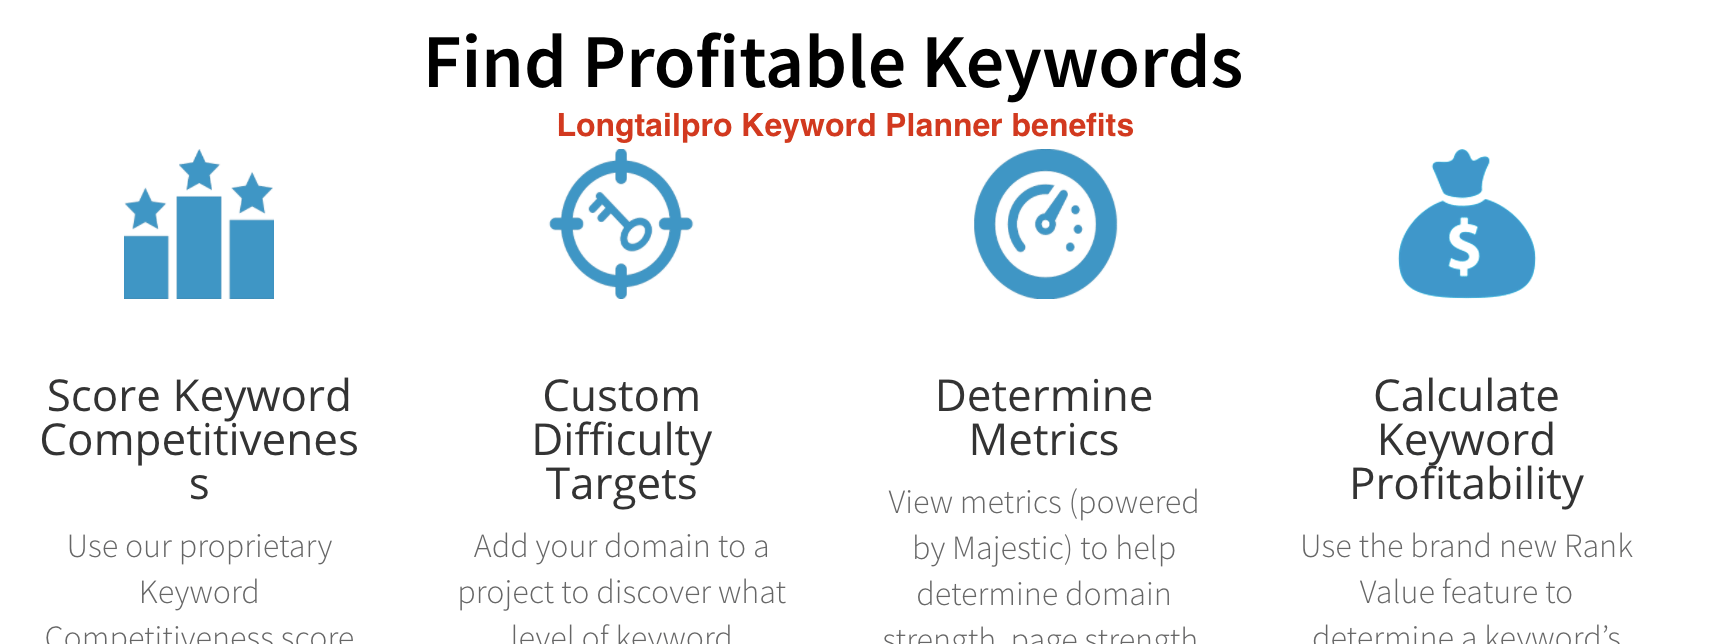 Longtailpro Keyword Planner benefits